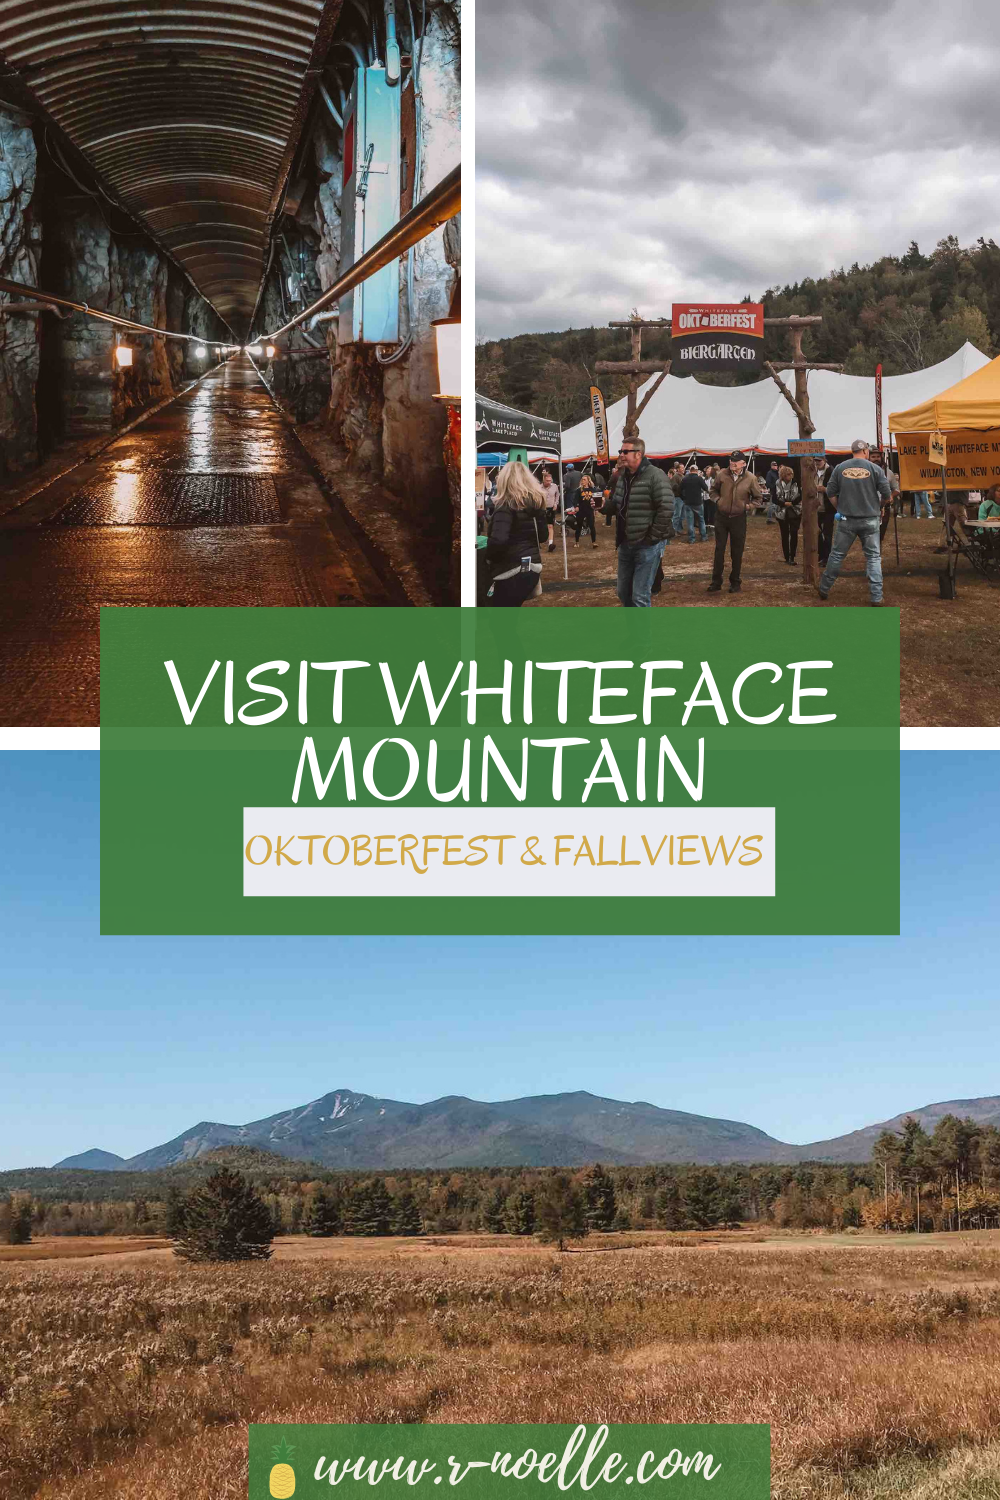 Whiteface Mountain in in the Adirondacks with so many things to do. In the fall, visit Oktoberfest at Whiteface mountain. Adirondacks has hiking, leaves changing, camping, and more high peaks to explore. Come a day, go on a gondola, and see the beauty of the high peaks! #whitefaceny #adirondacksthingstodo | Things to do in Adirondacks | Whiteface Mountain | Adirondack hiking